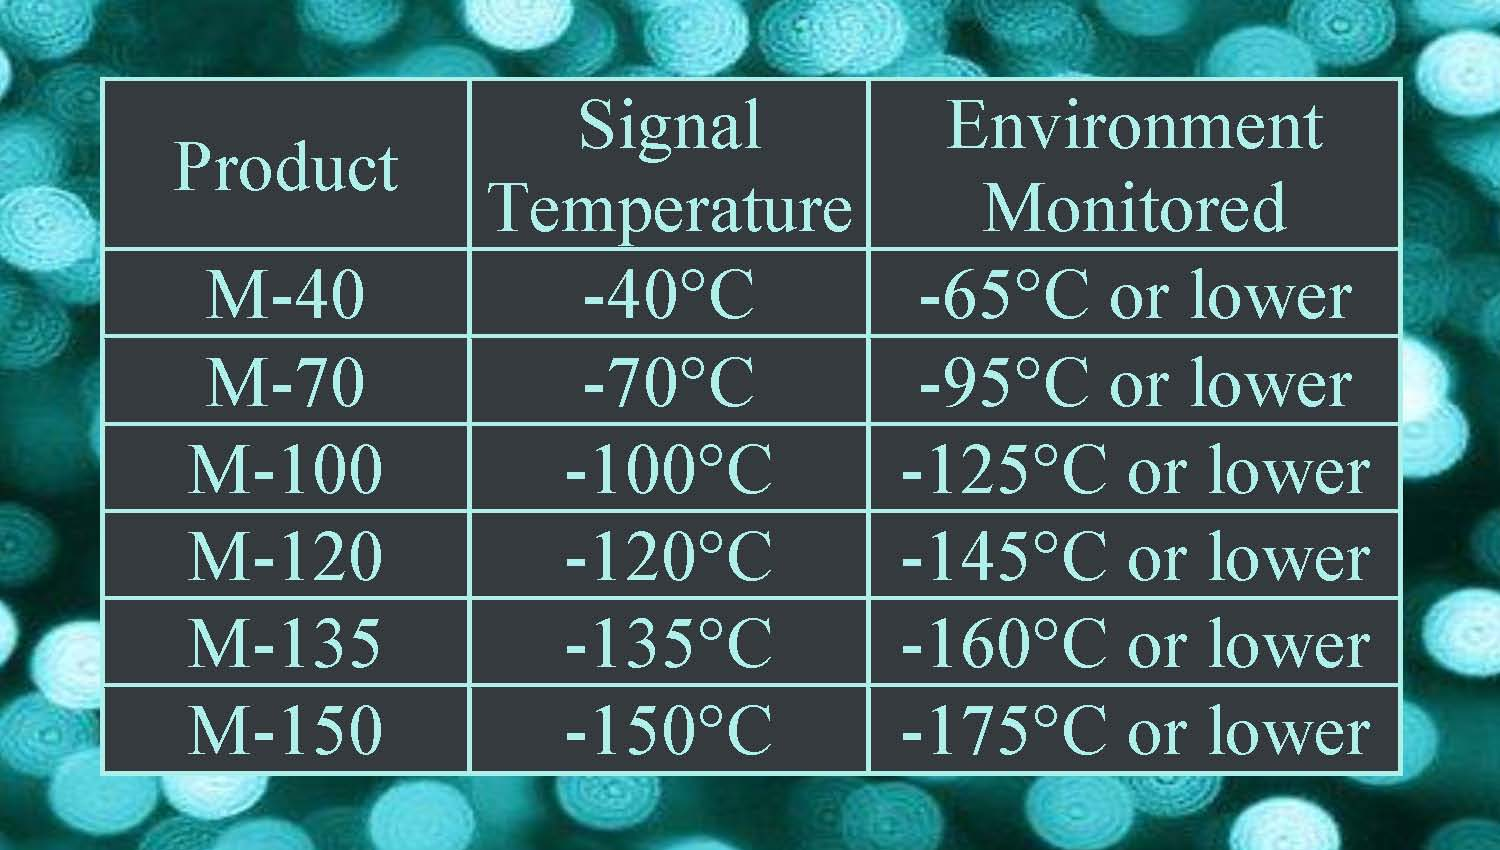 table-with-signal-temperature-for-website.jpg